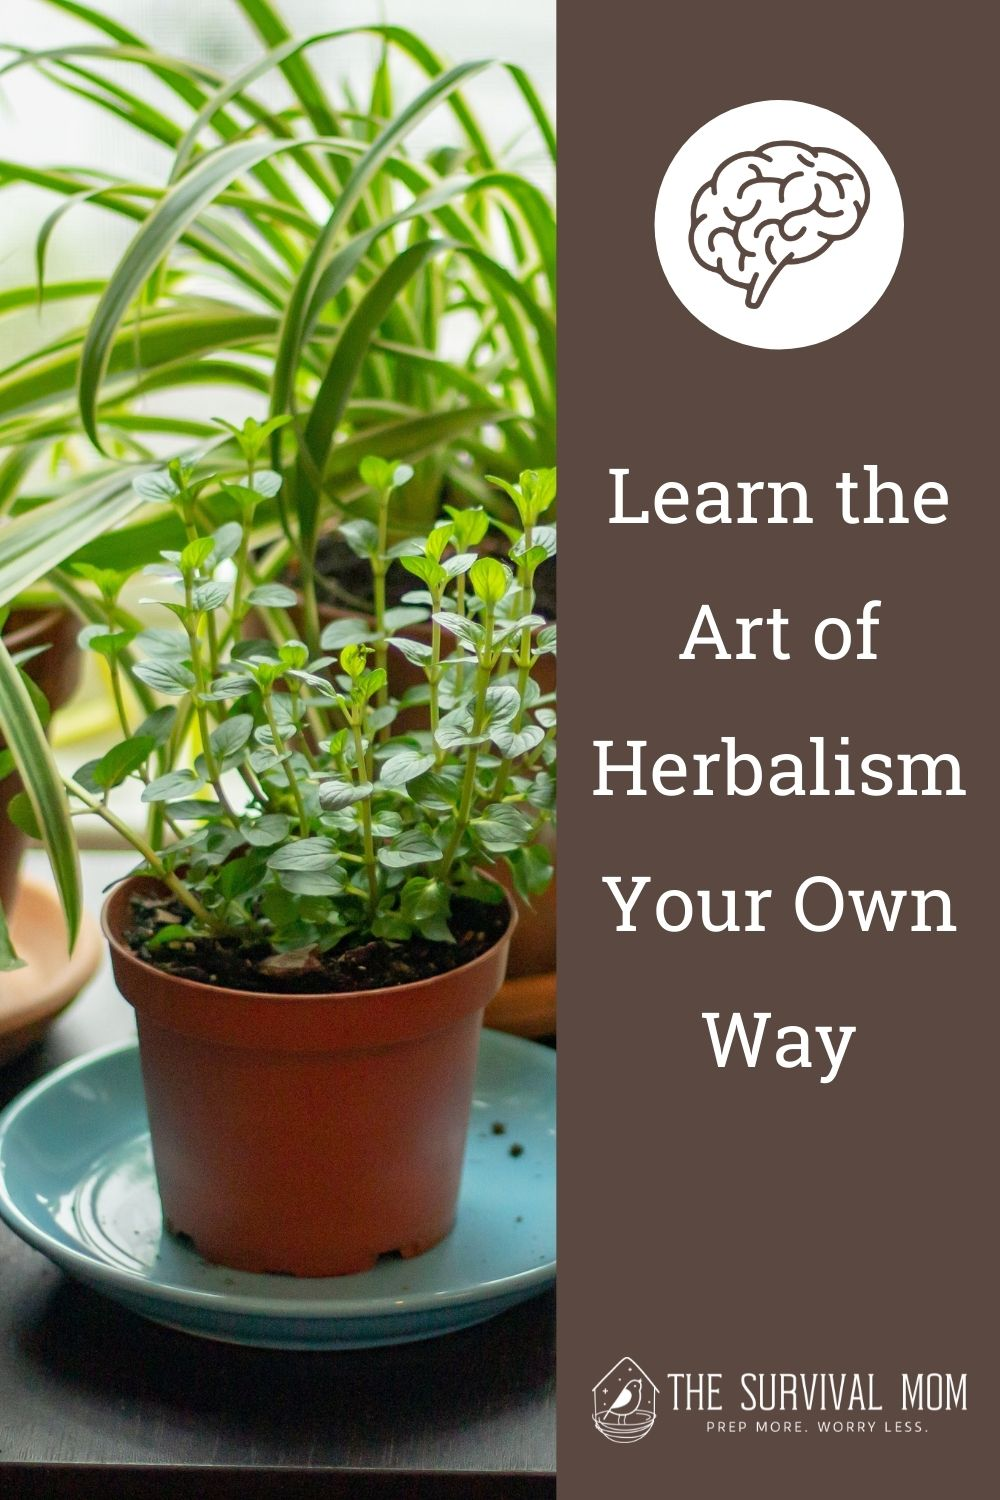 Learn the Art of Herbalism Your Own Way via The Survival Mom